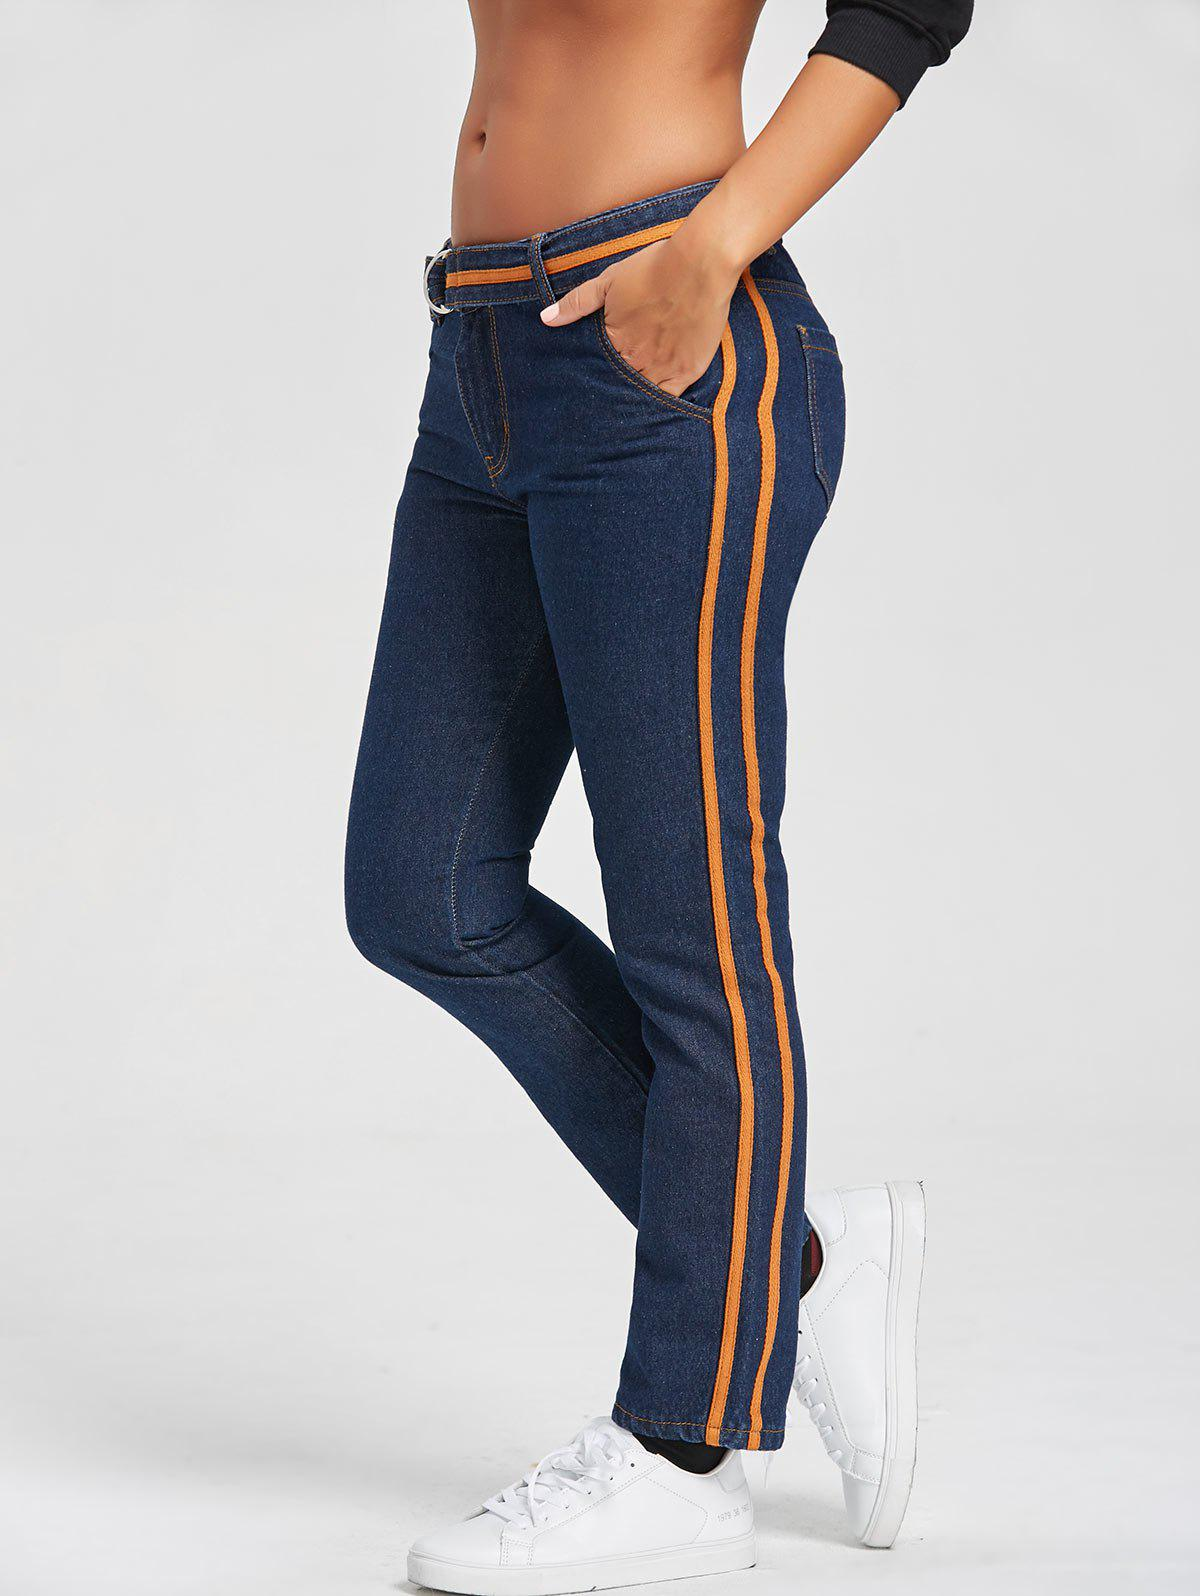 Contrast Trim Straight Jeans and Belt